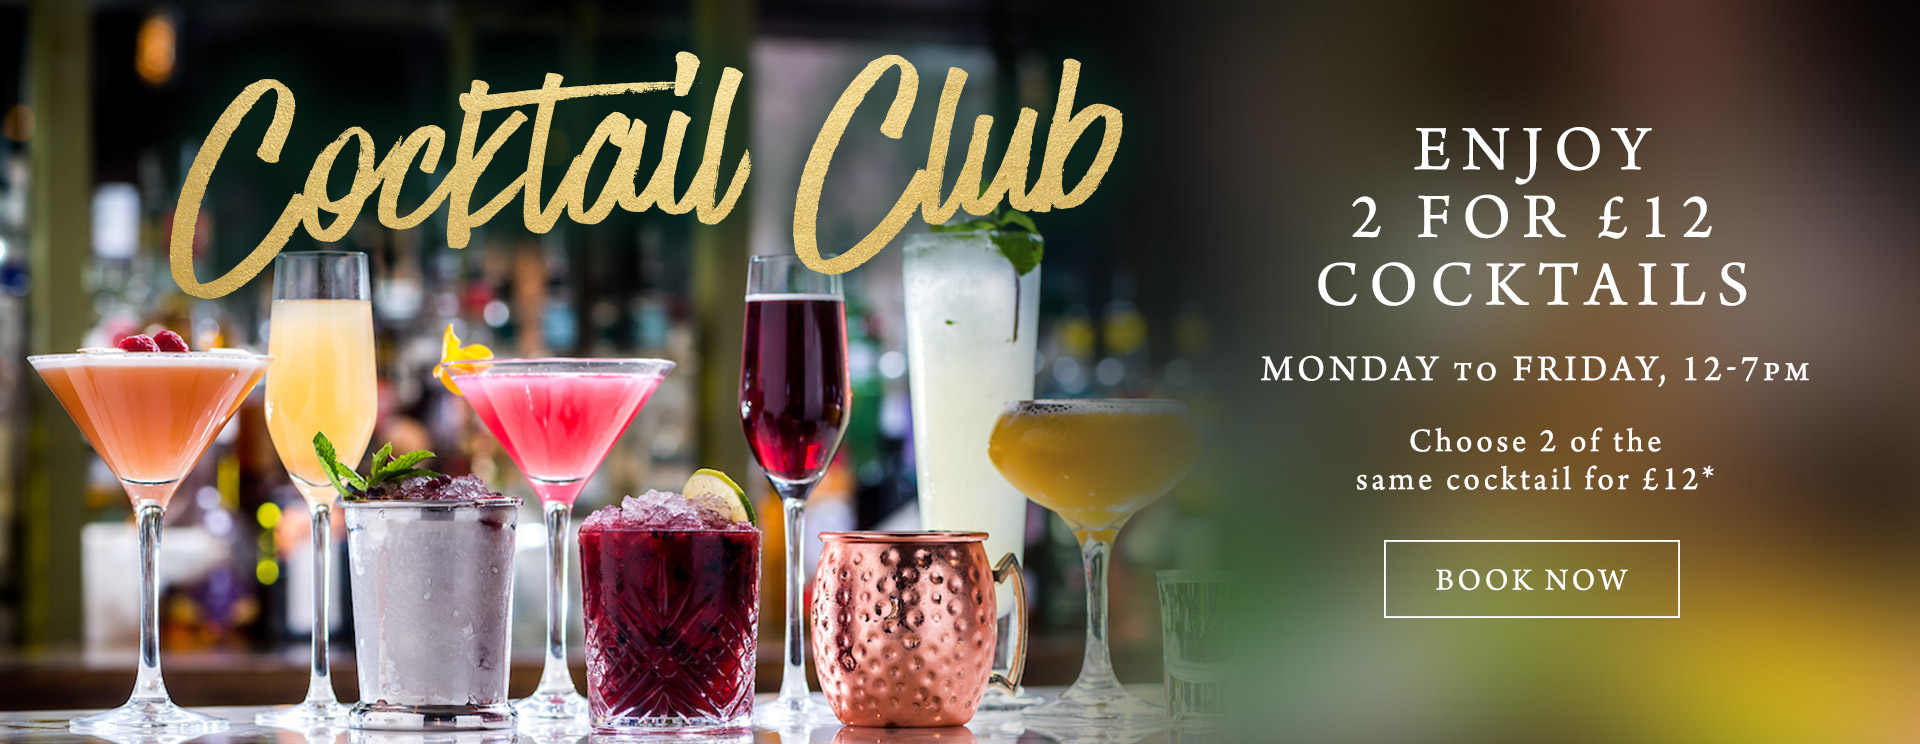 2 for £12 cocktails at The Mossbrook Inn